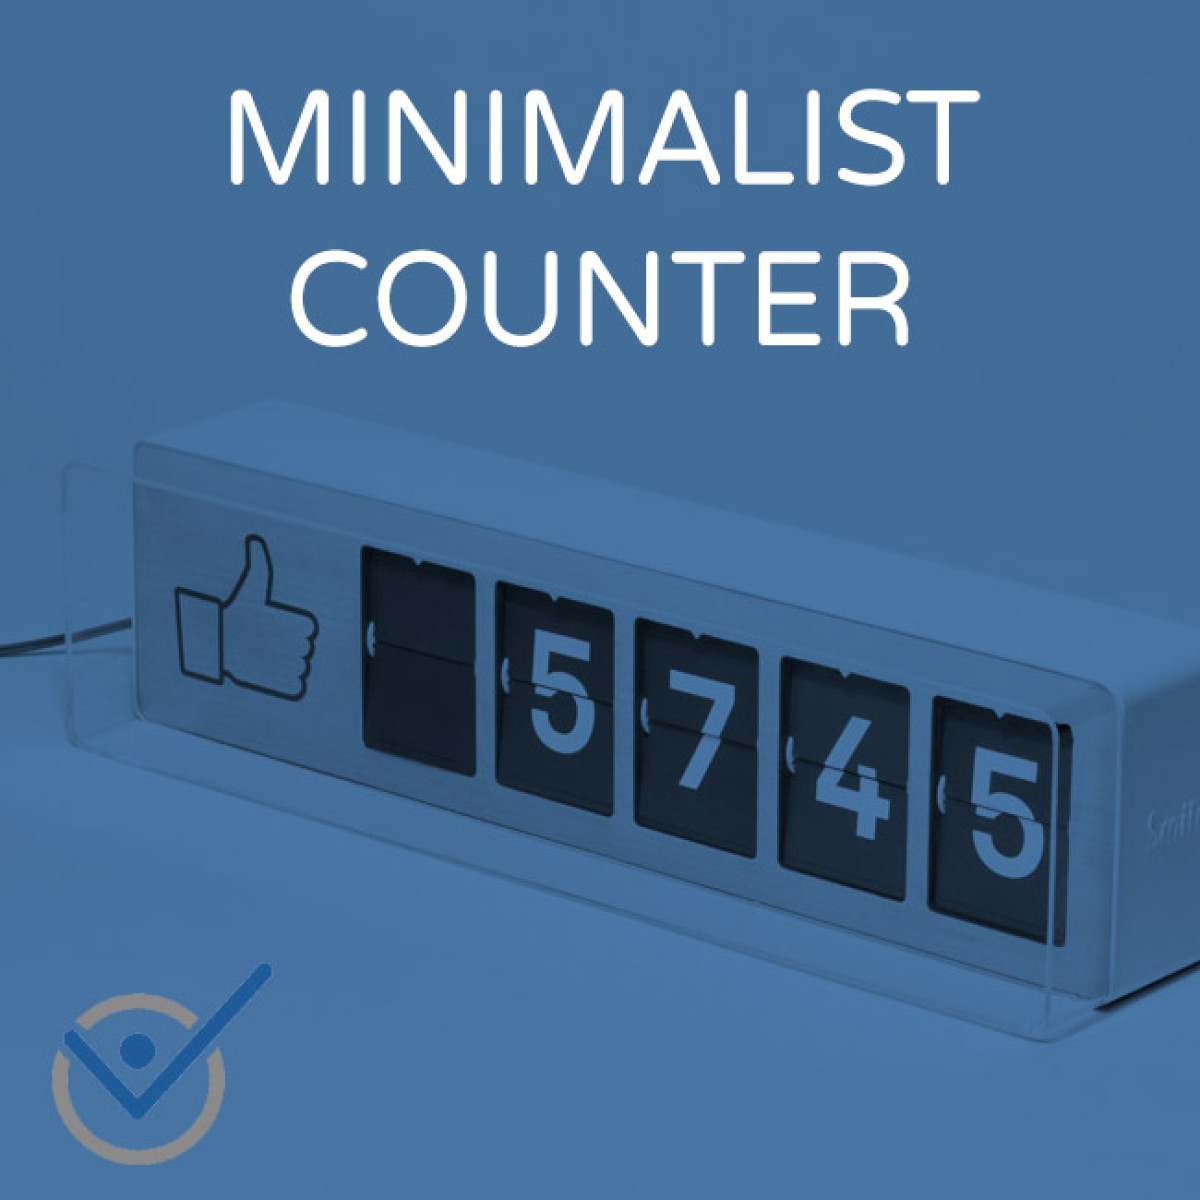 Become Minimalist Counter